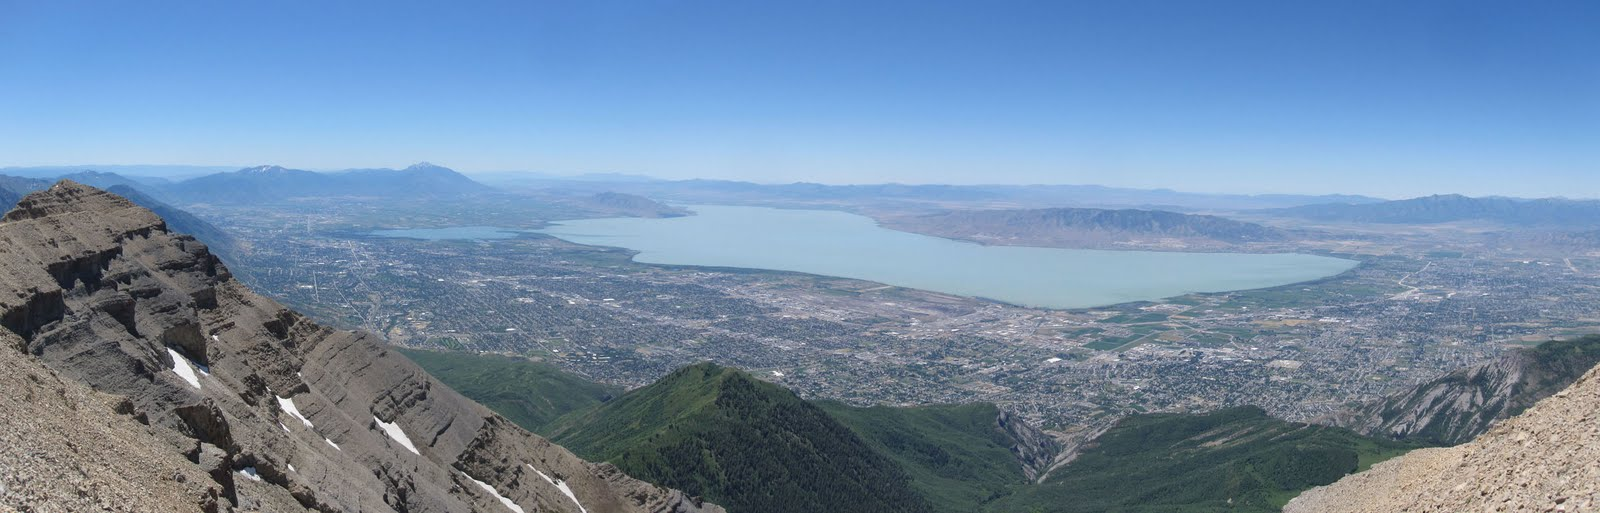 UVU from Mt. Timpanogos: Photo Courtesy of Jake Krong